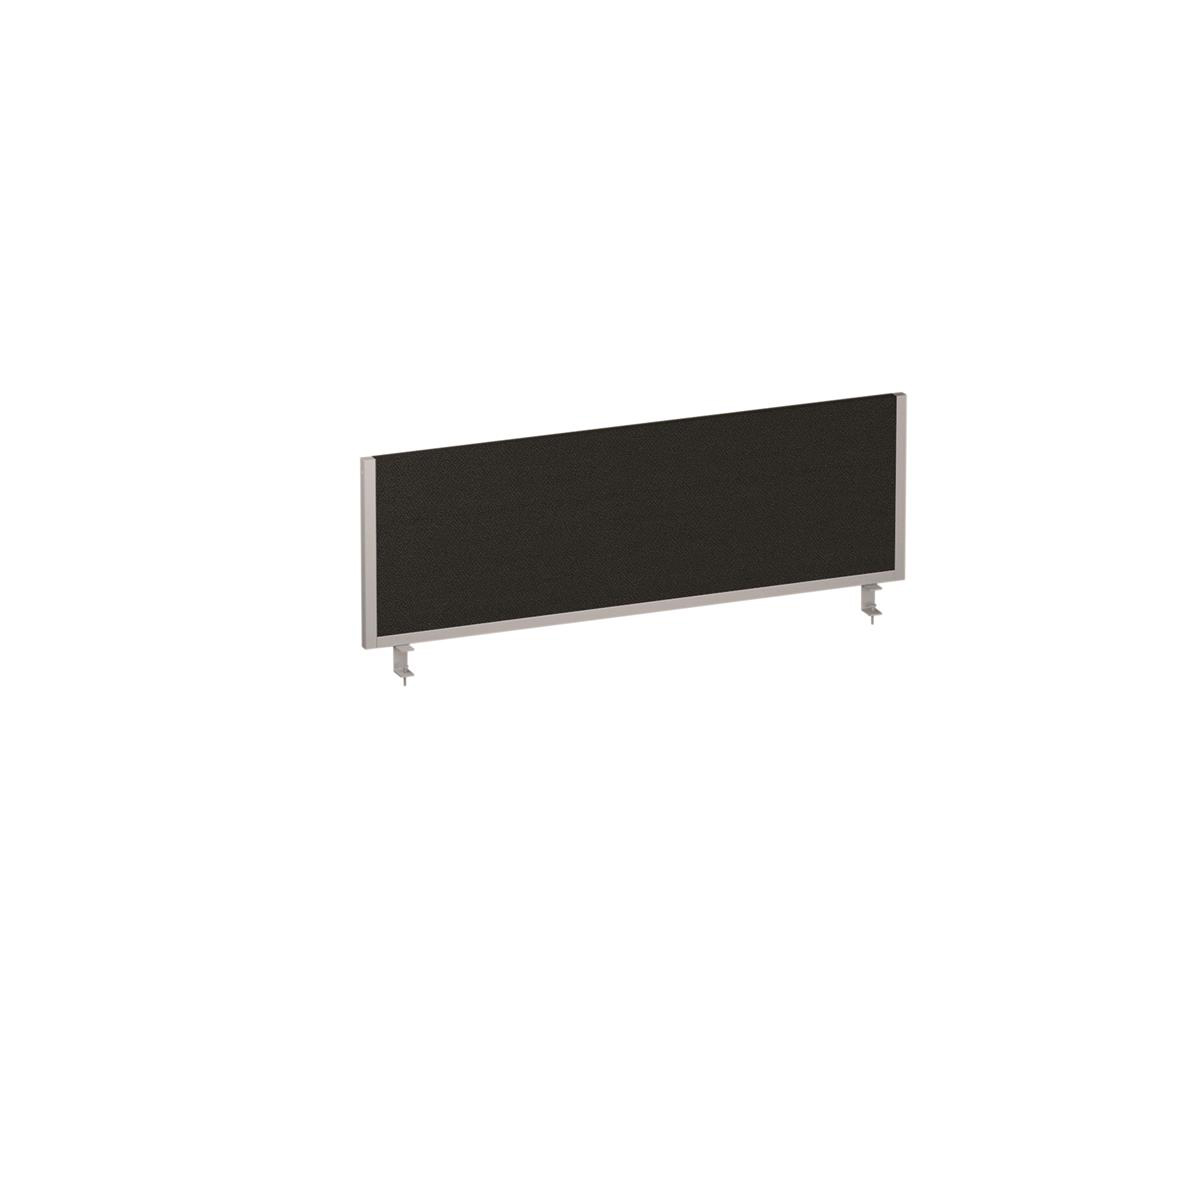 Trexus Screens 1200mm Black/Silver